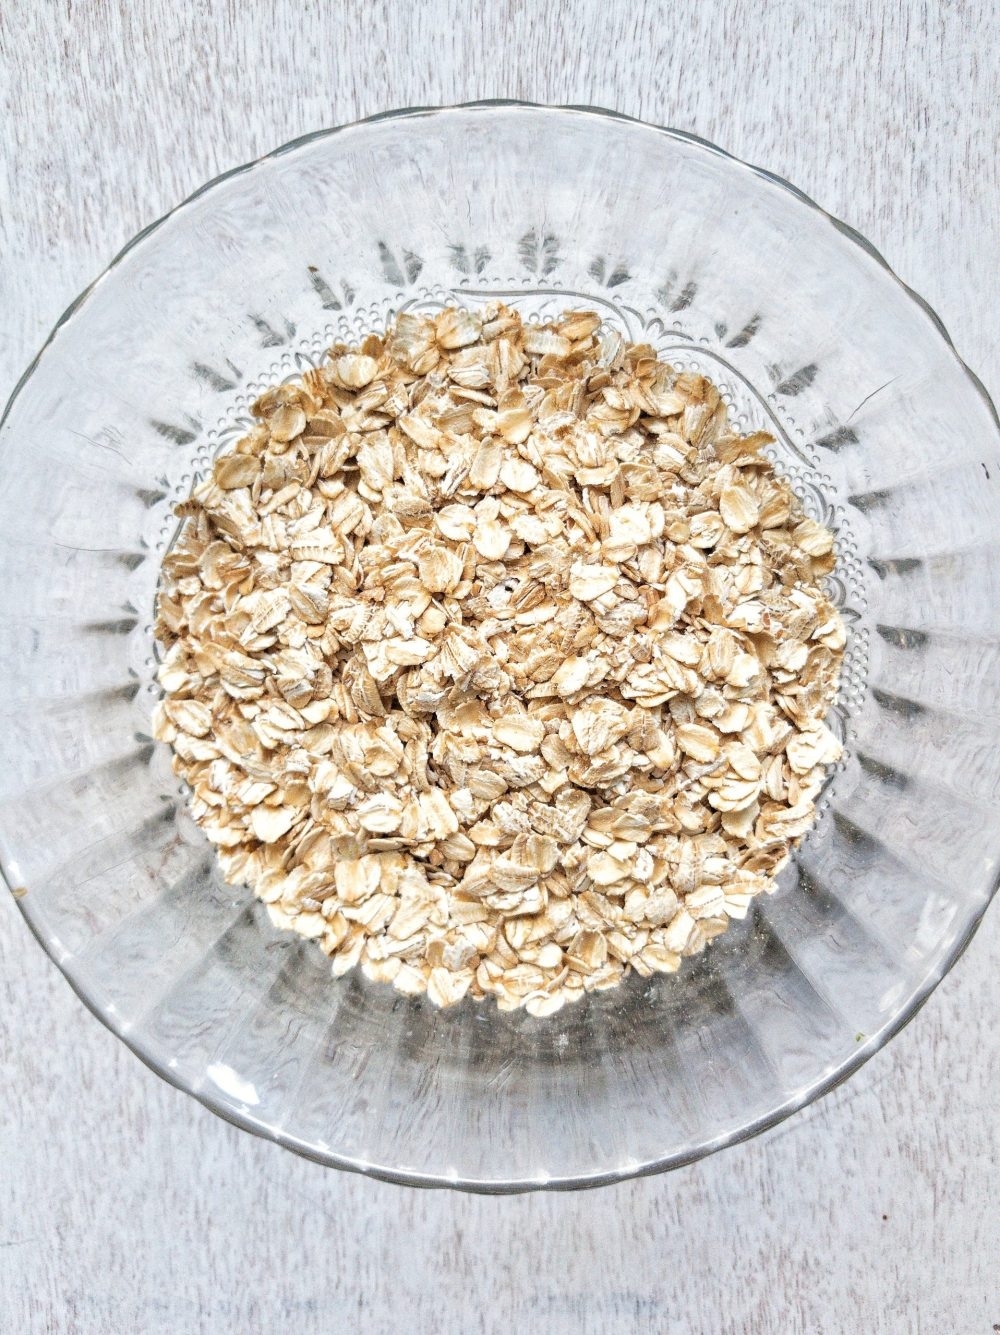 Rolled oats or old-fashioned oats in a clear, glass bowl.